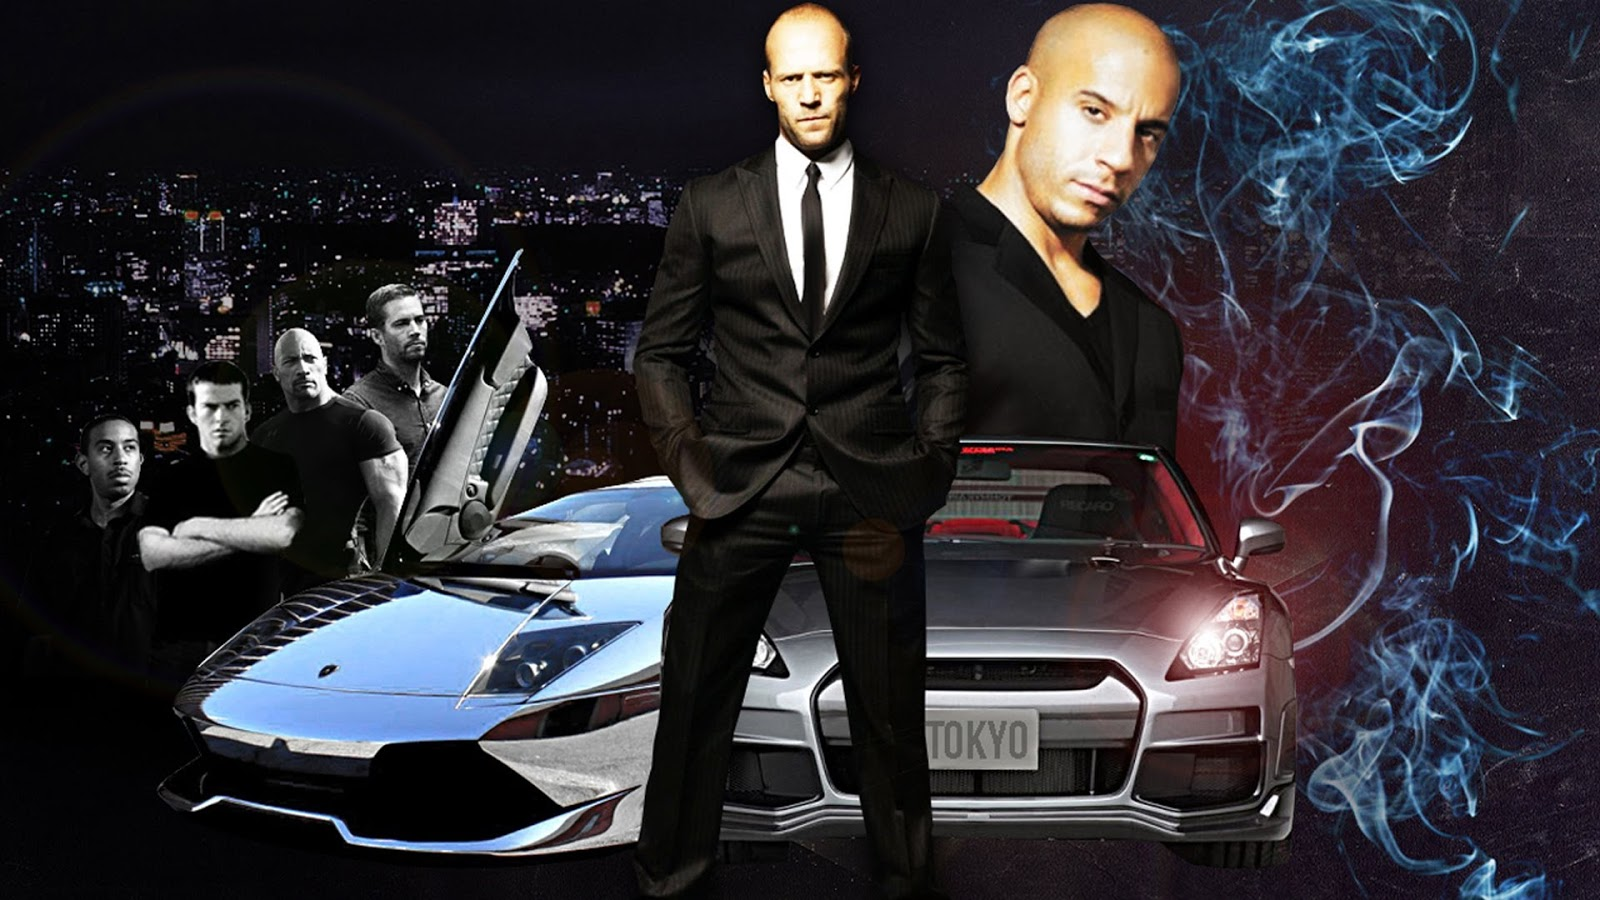 Fast and furious 8 movies 2017 top 10 hd wallpapers hd - Furious 8 wallpaper ...